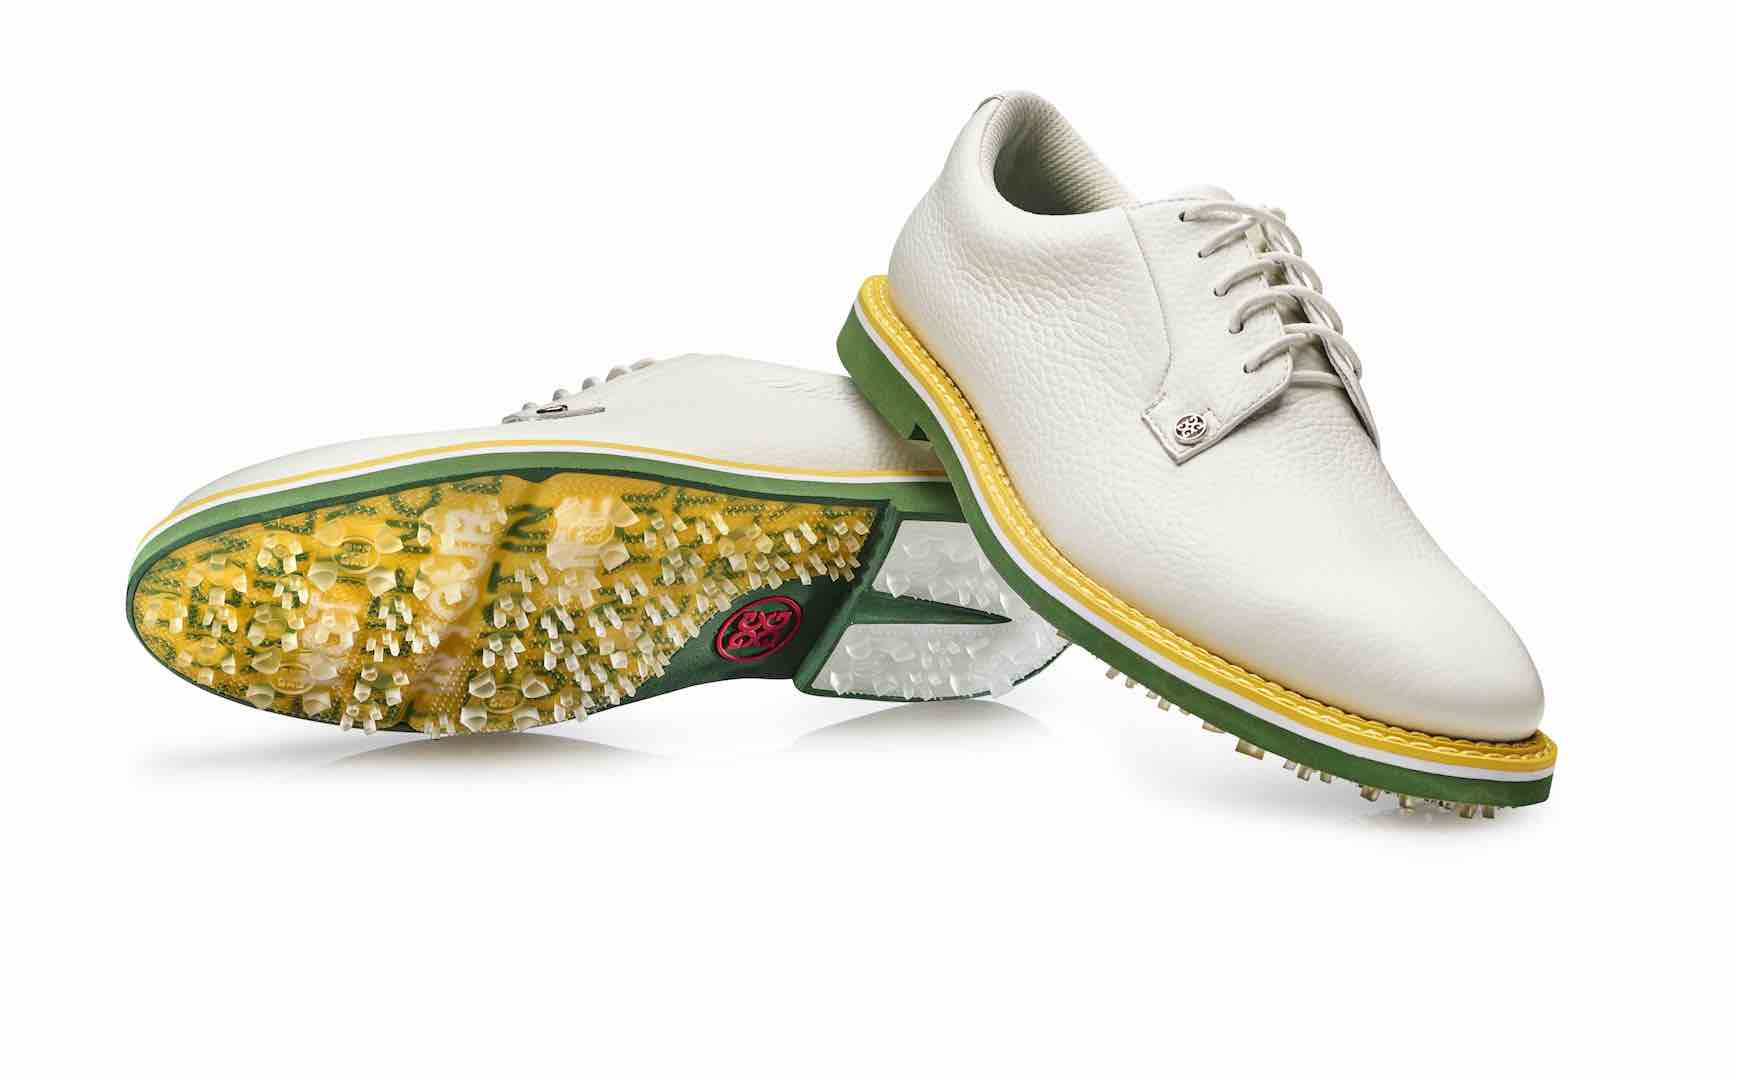 It's shoe time for Bubba Watson and G/Fore